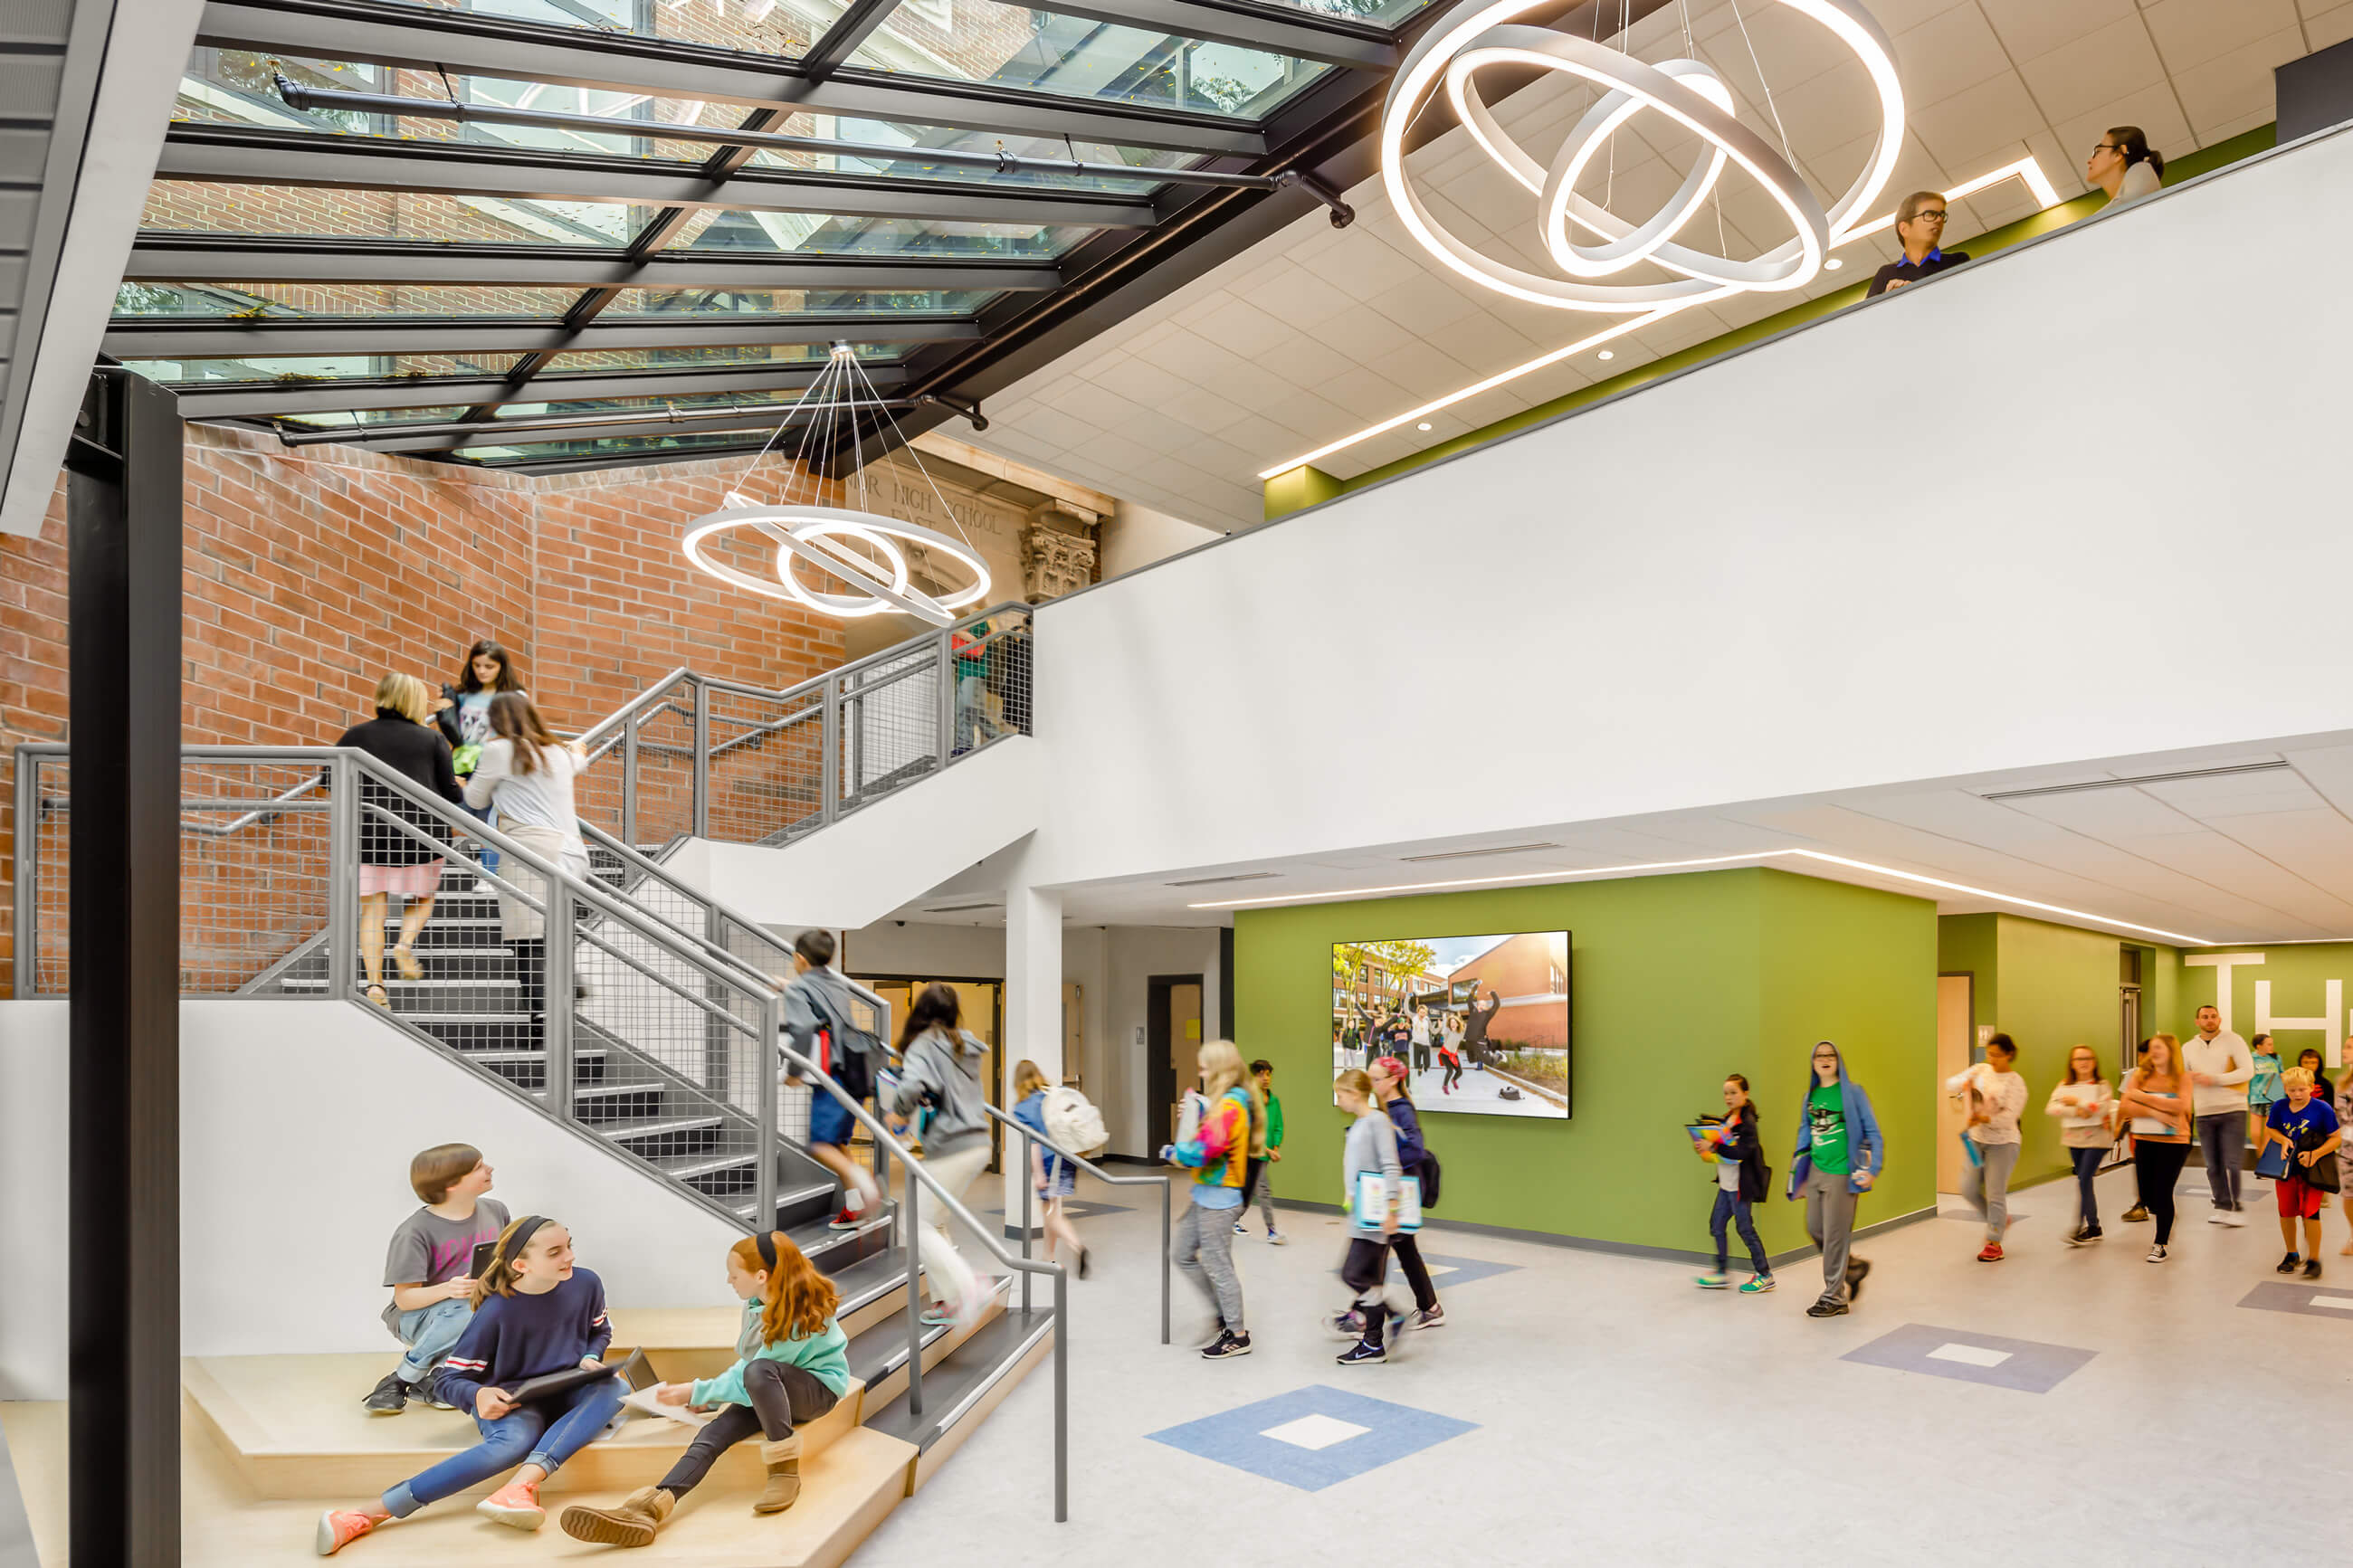 Students in the new entrance foyer, which features green and white walls, an existing brick wall, and a sky-light with modern circular lights.